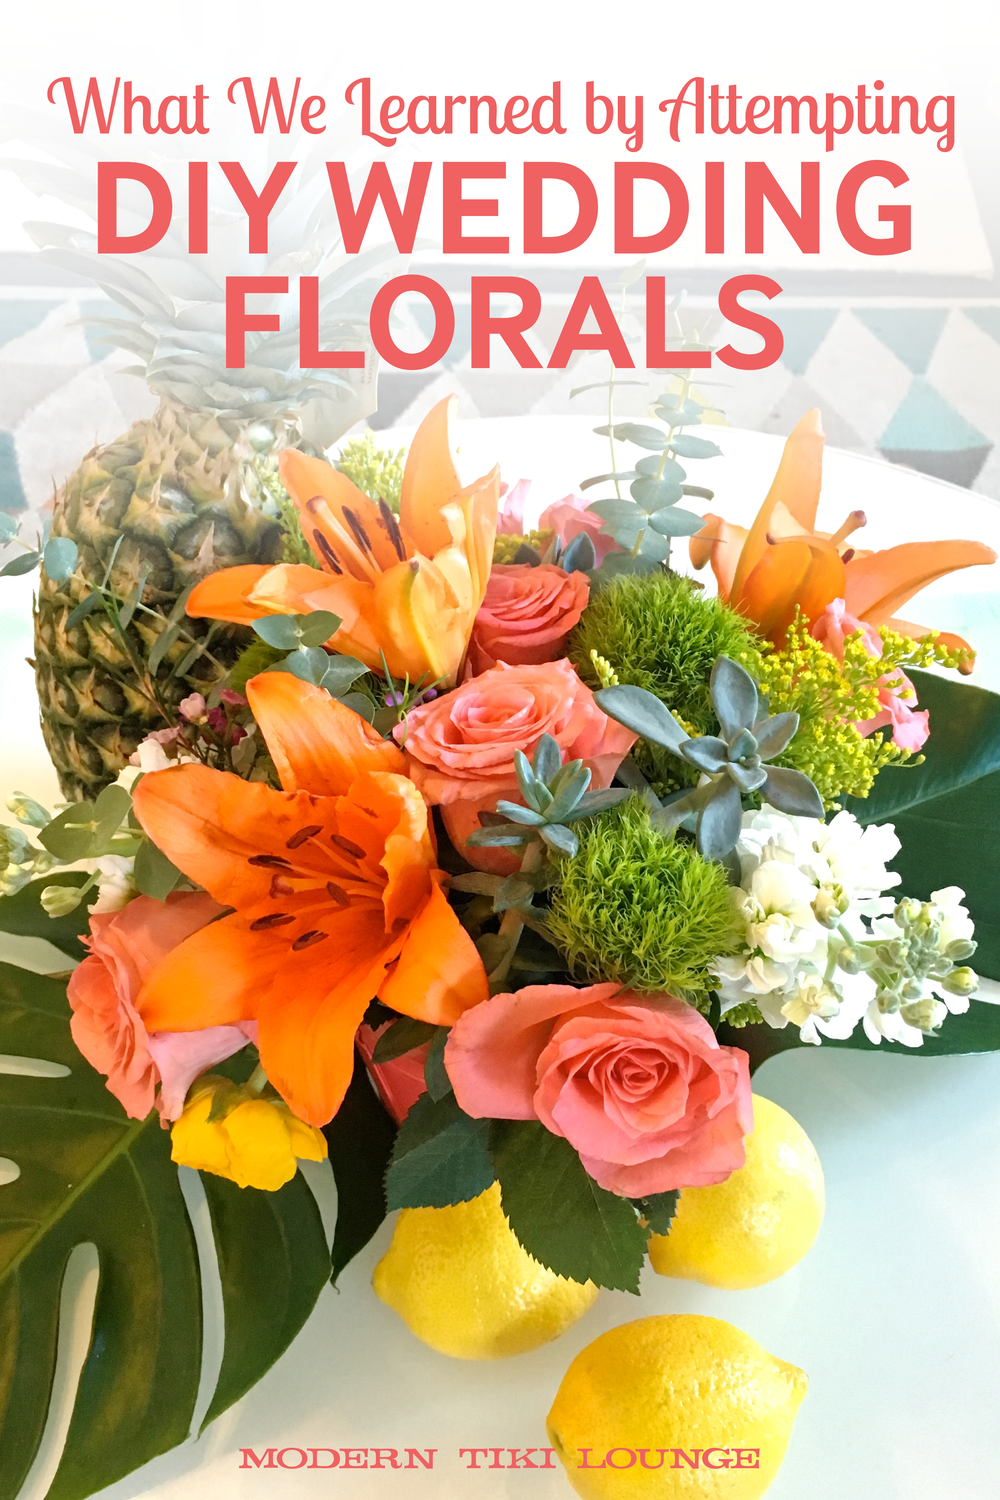 diy-wedding-florals.jpg